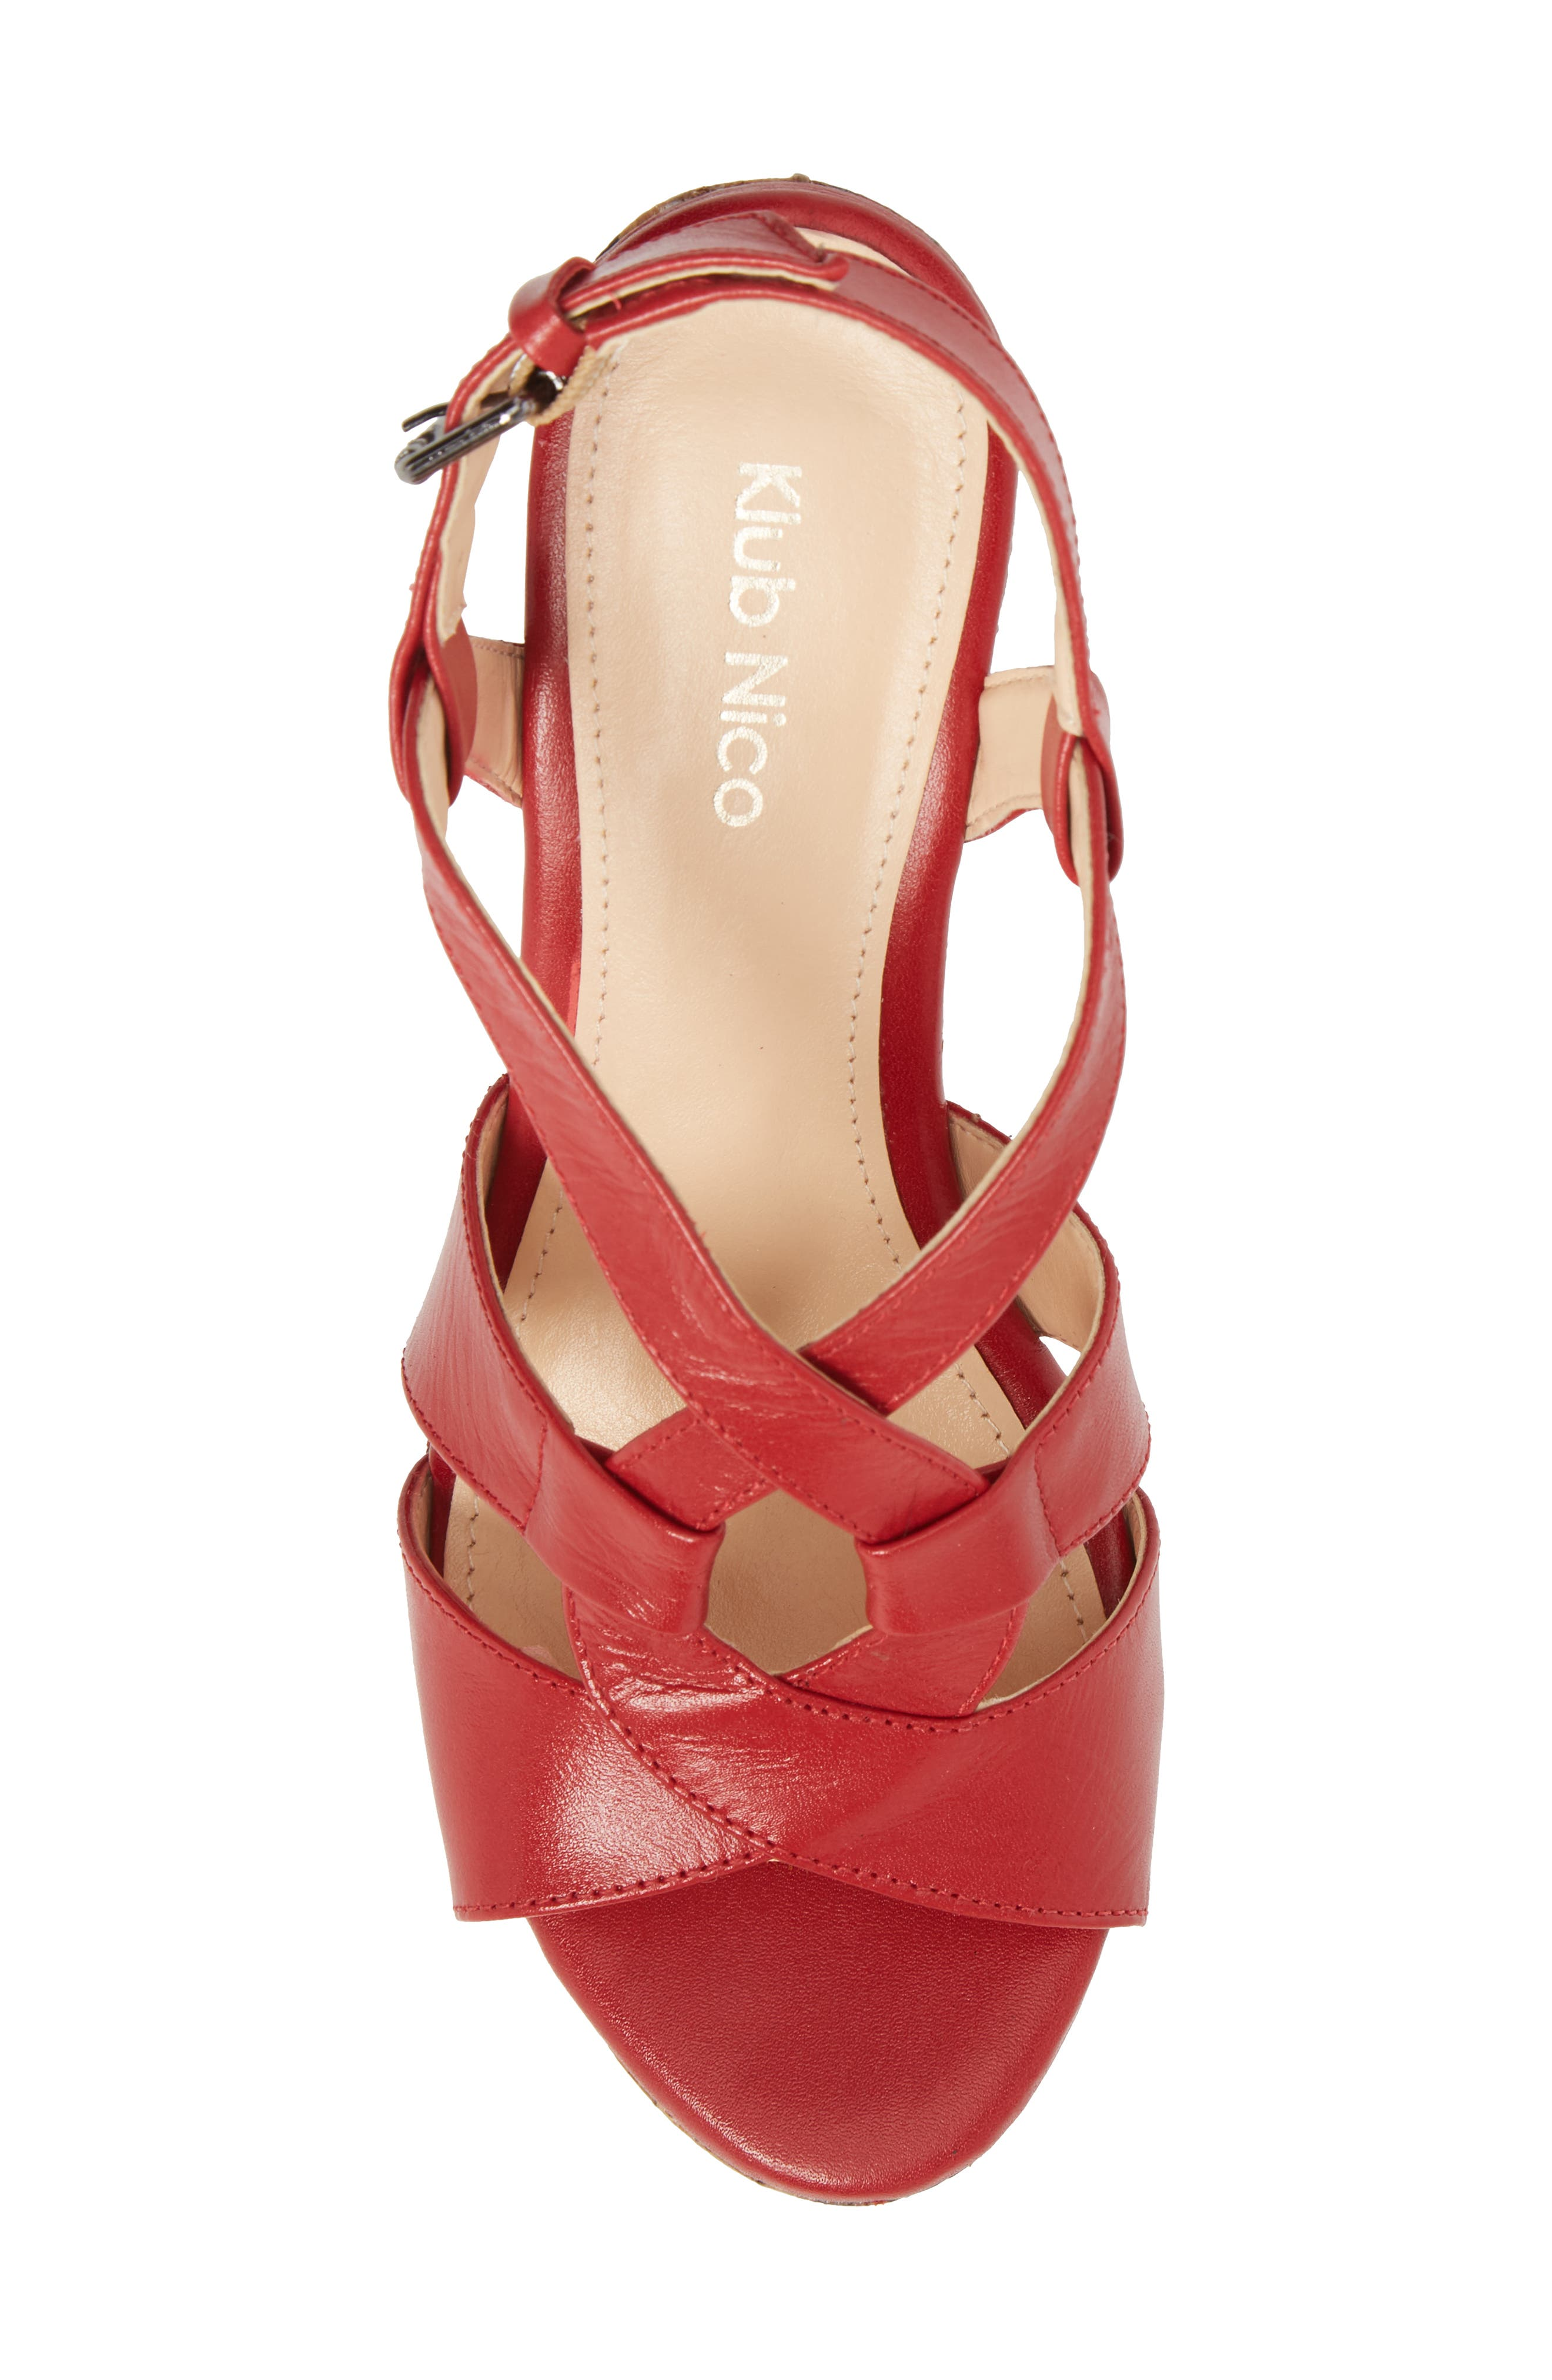 Victoria Platform Sandal,                             Alternate thumbnail 5, color,                             Red Leather